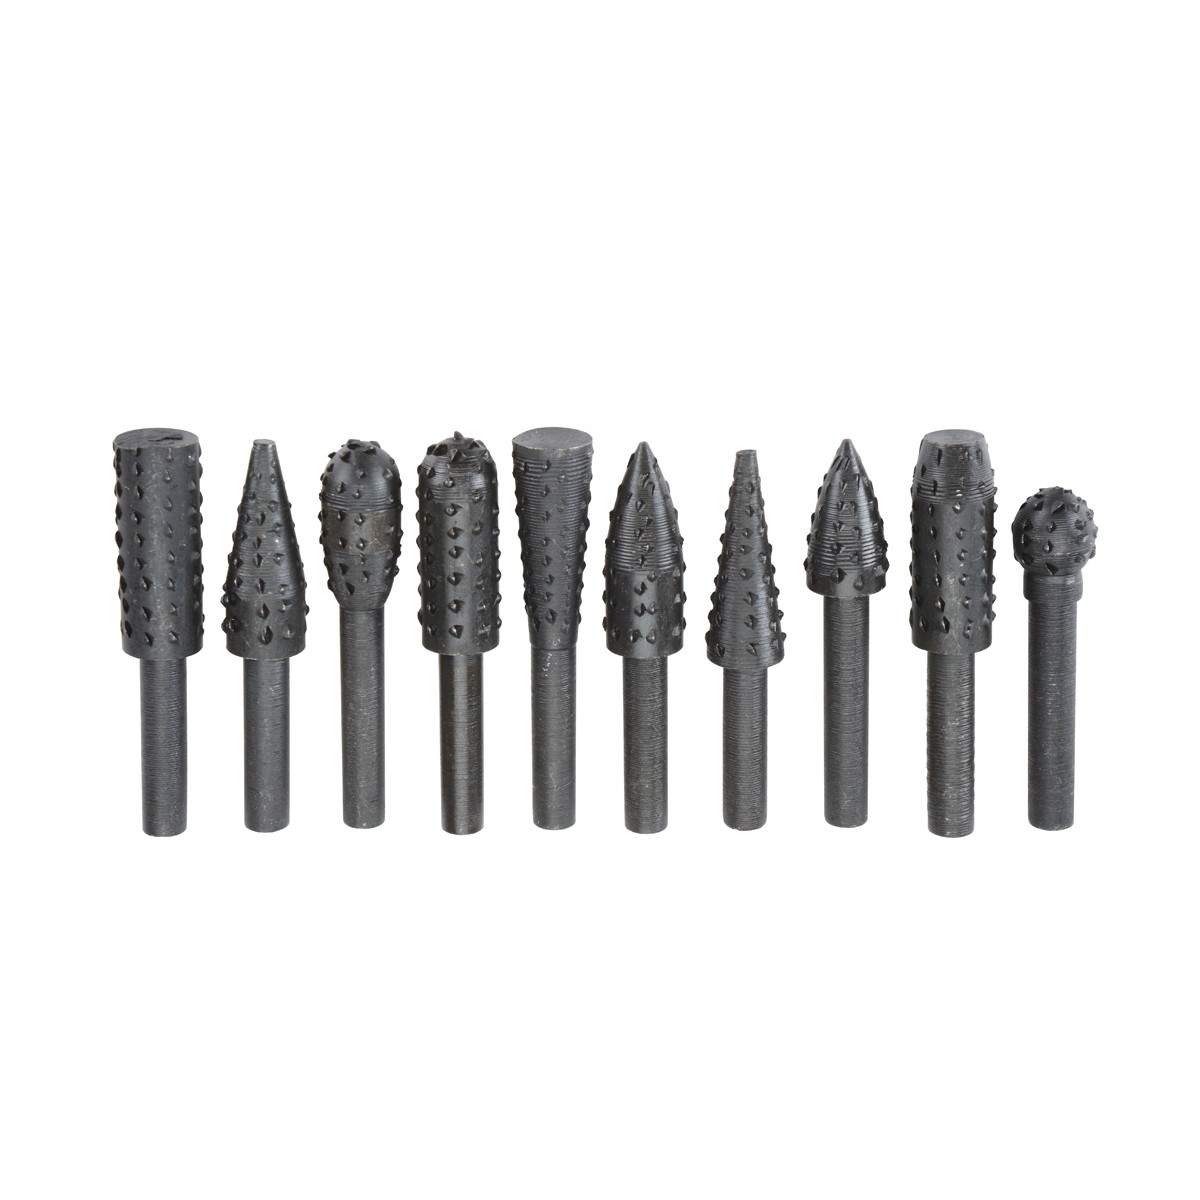 High Carbon Steel Rotary Rasp Set 10 Pc